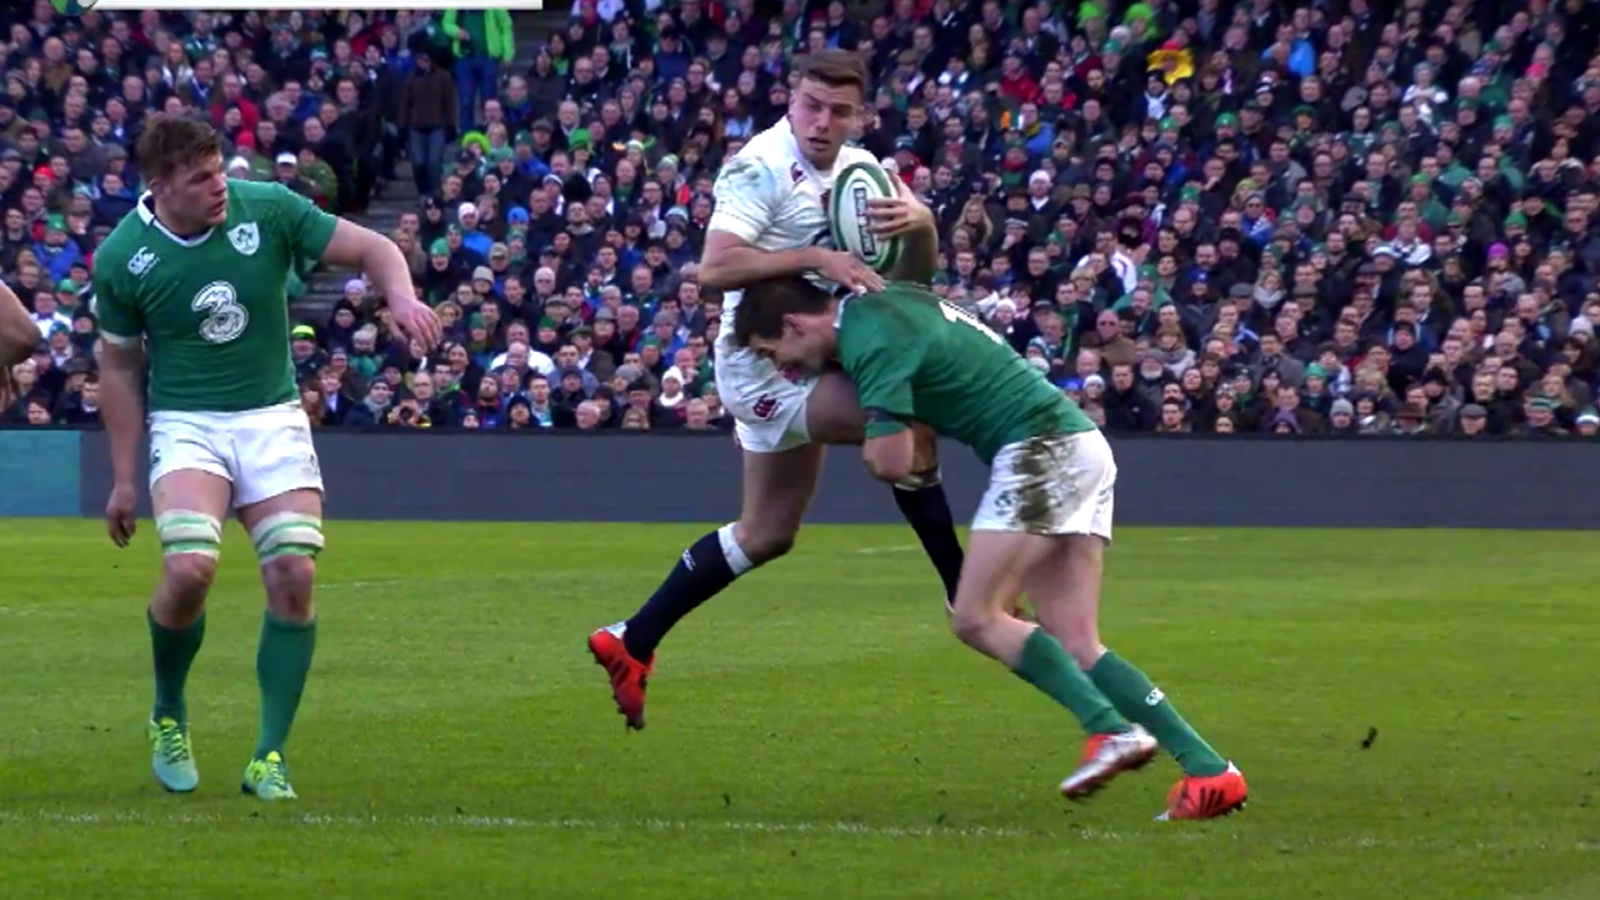 Tournoi des 6 nations l 39 norme plaquage de sexton sur ford 6 nations 2015 rugby rugbyrama - Rugby coupe des 6 nations ...